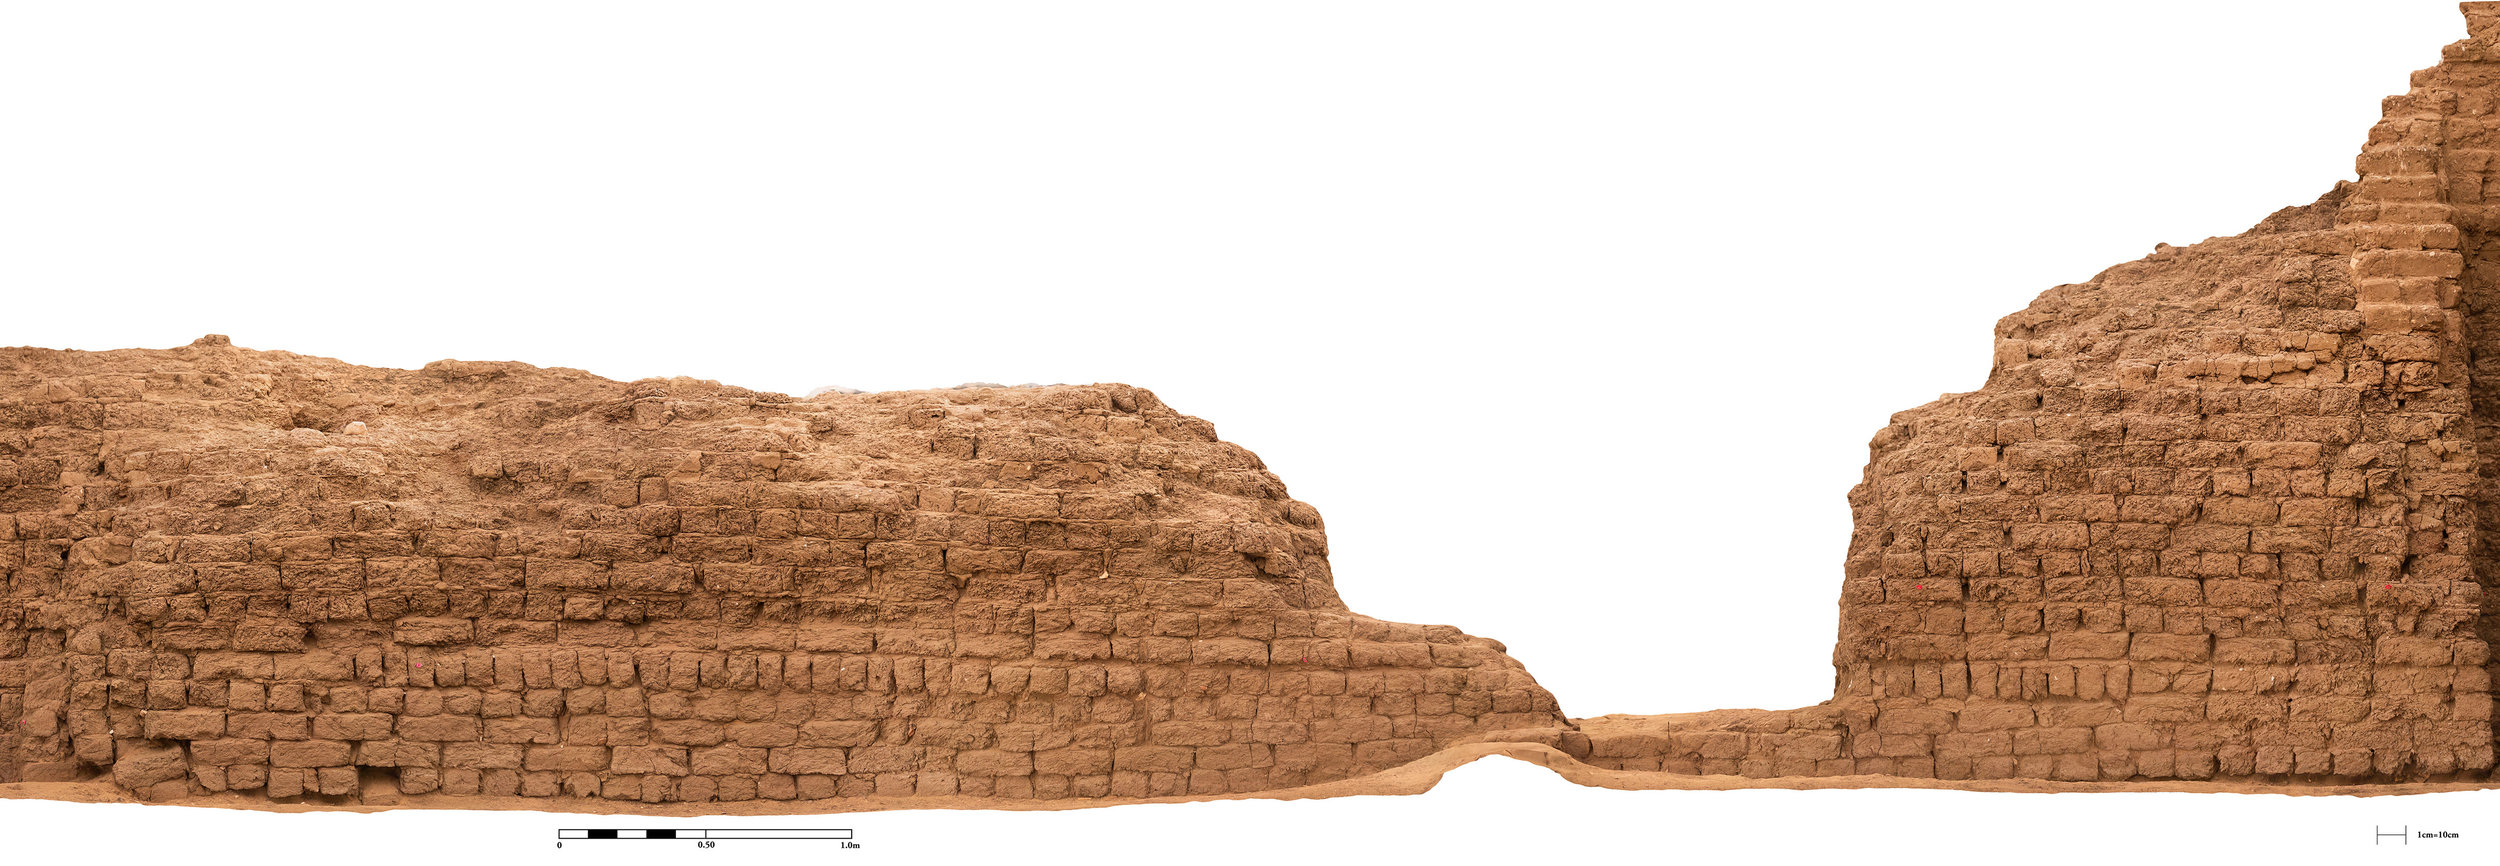 Fig. 18. Architectural modeling of the east corner gateway of the Shunet el-Zebib — step five, orthorectified image. Photo: Blair Simmons / North Abydos Expedition © 2019